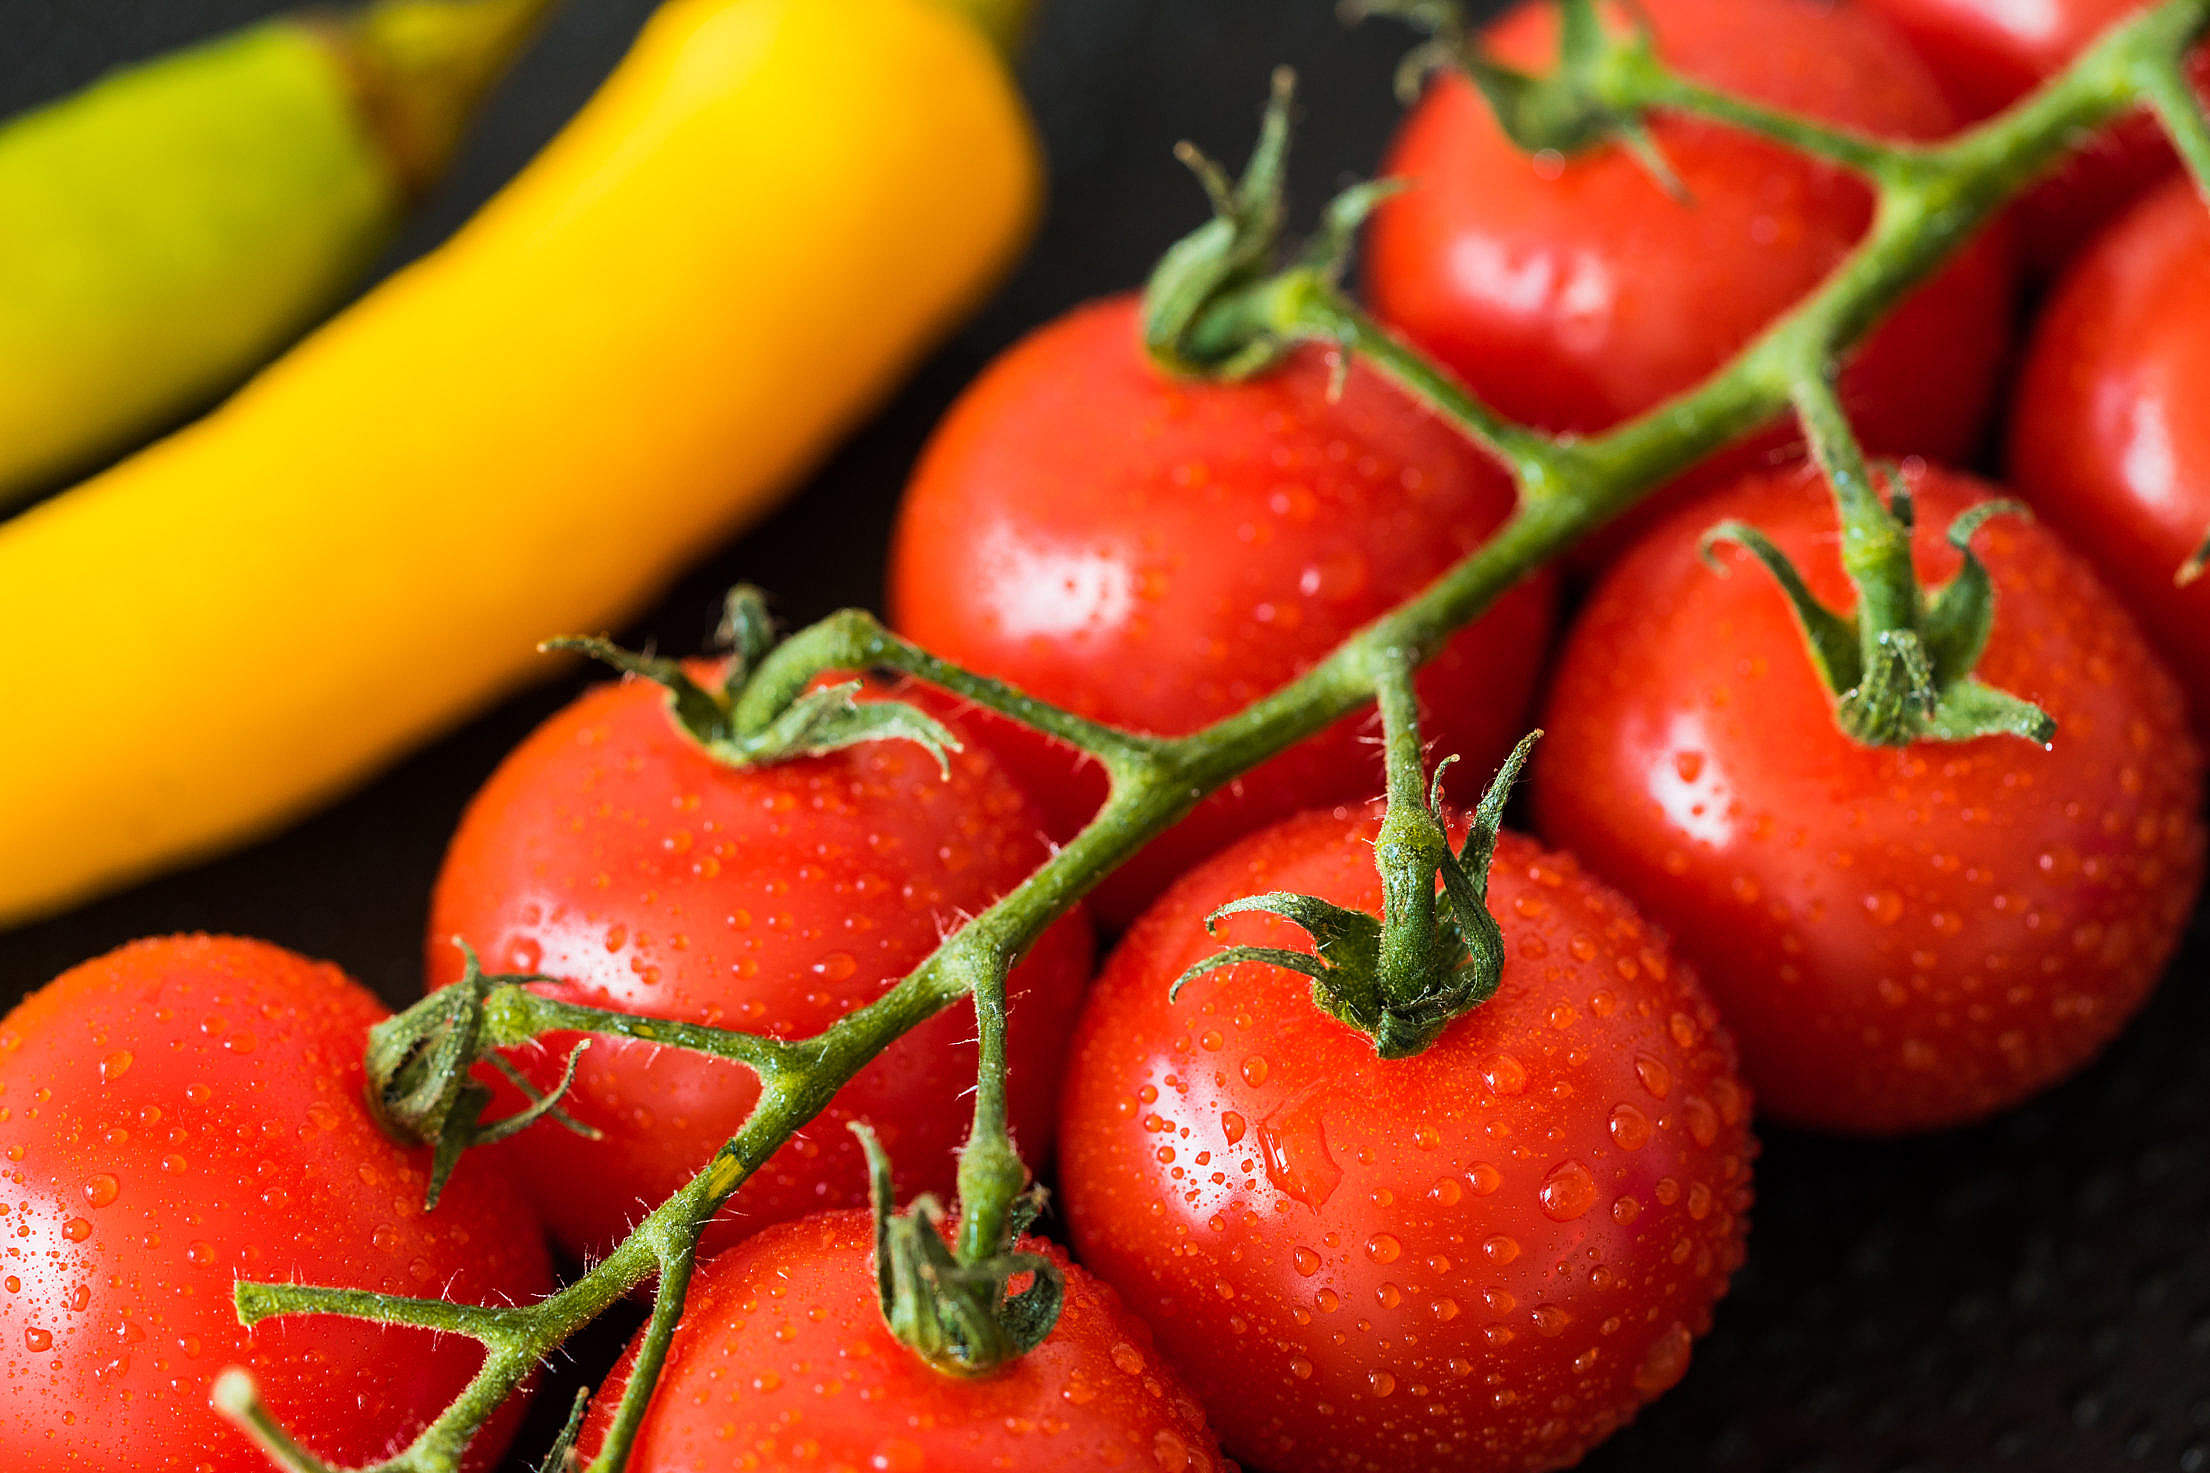 Wet Tomatoes and Peppers Close Up Free Stock Photo